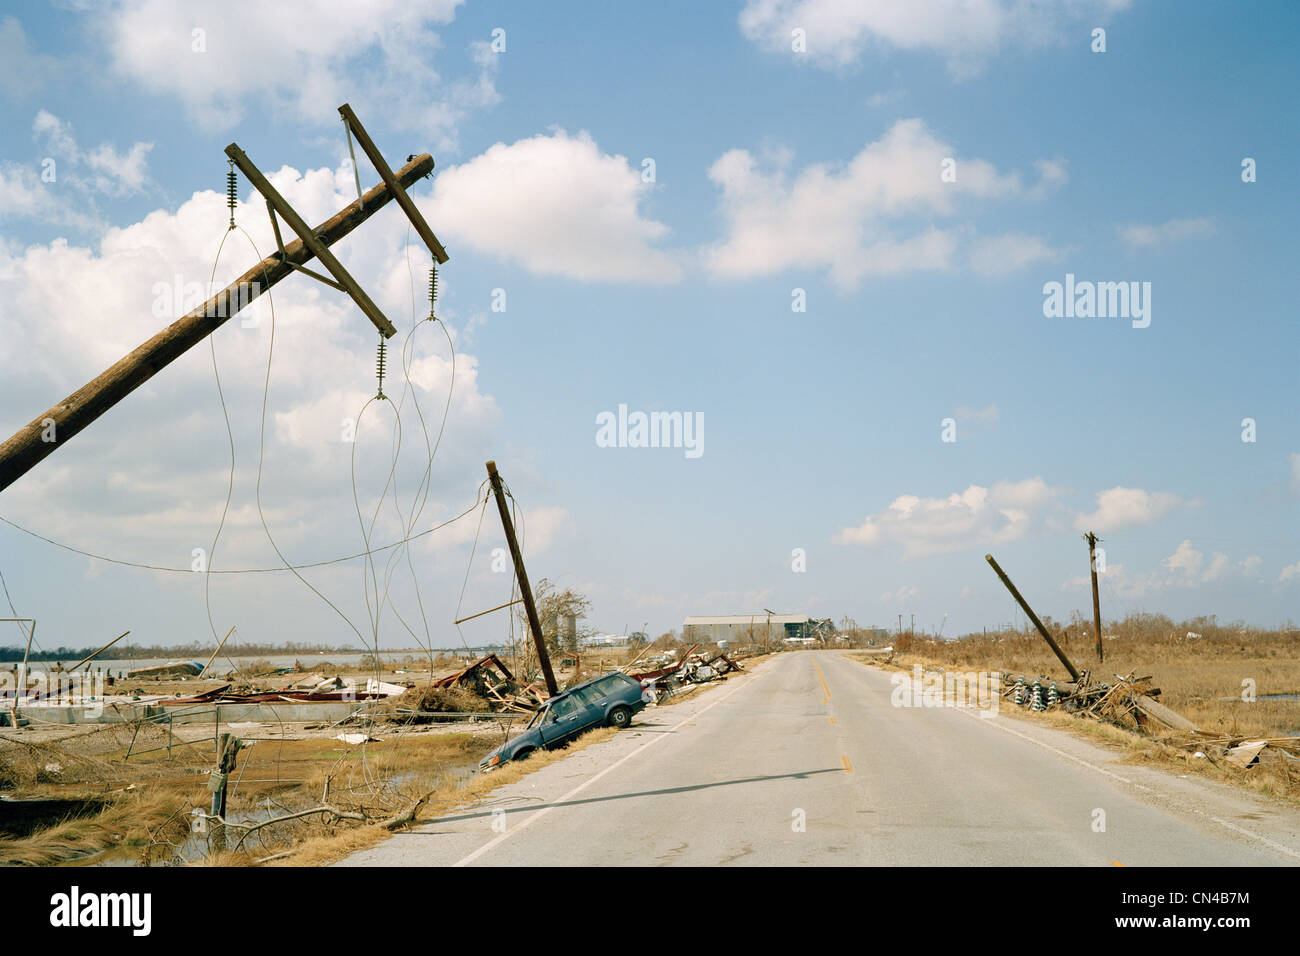 Fallen telephone poles and crashed car, aftermath of Hurricane Katrina, Cameron, Louisiana. USA - Stock Image